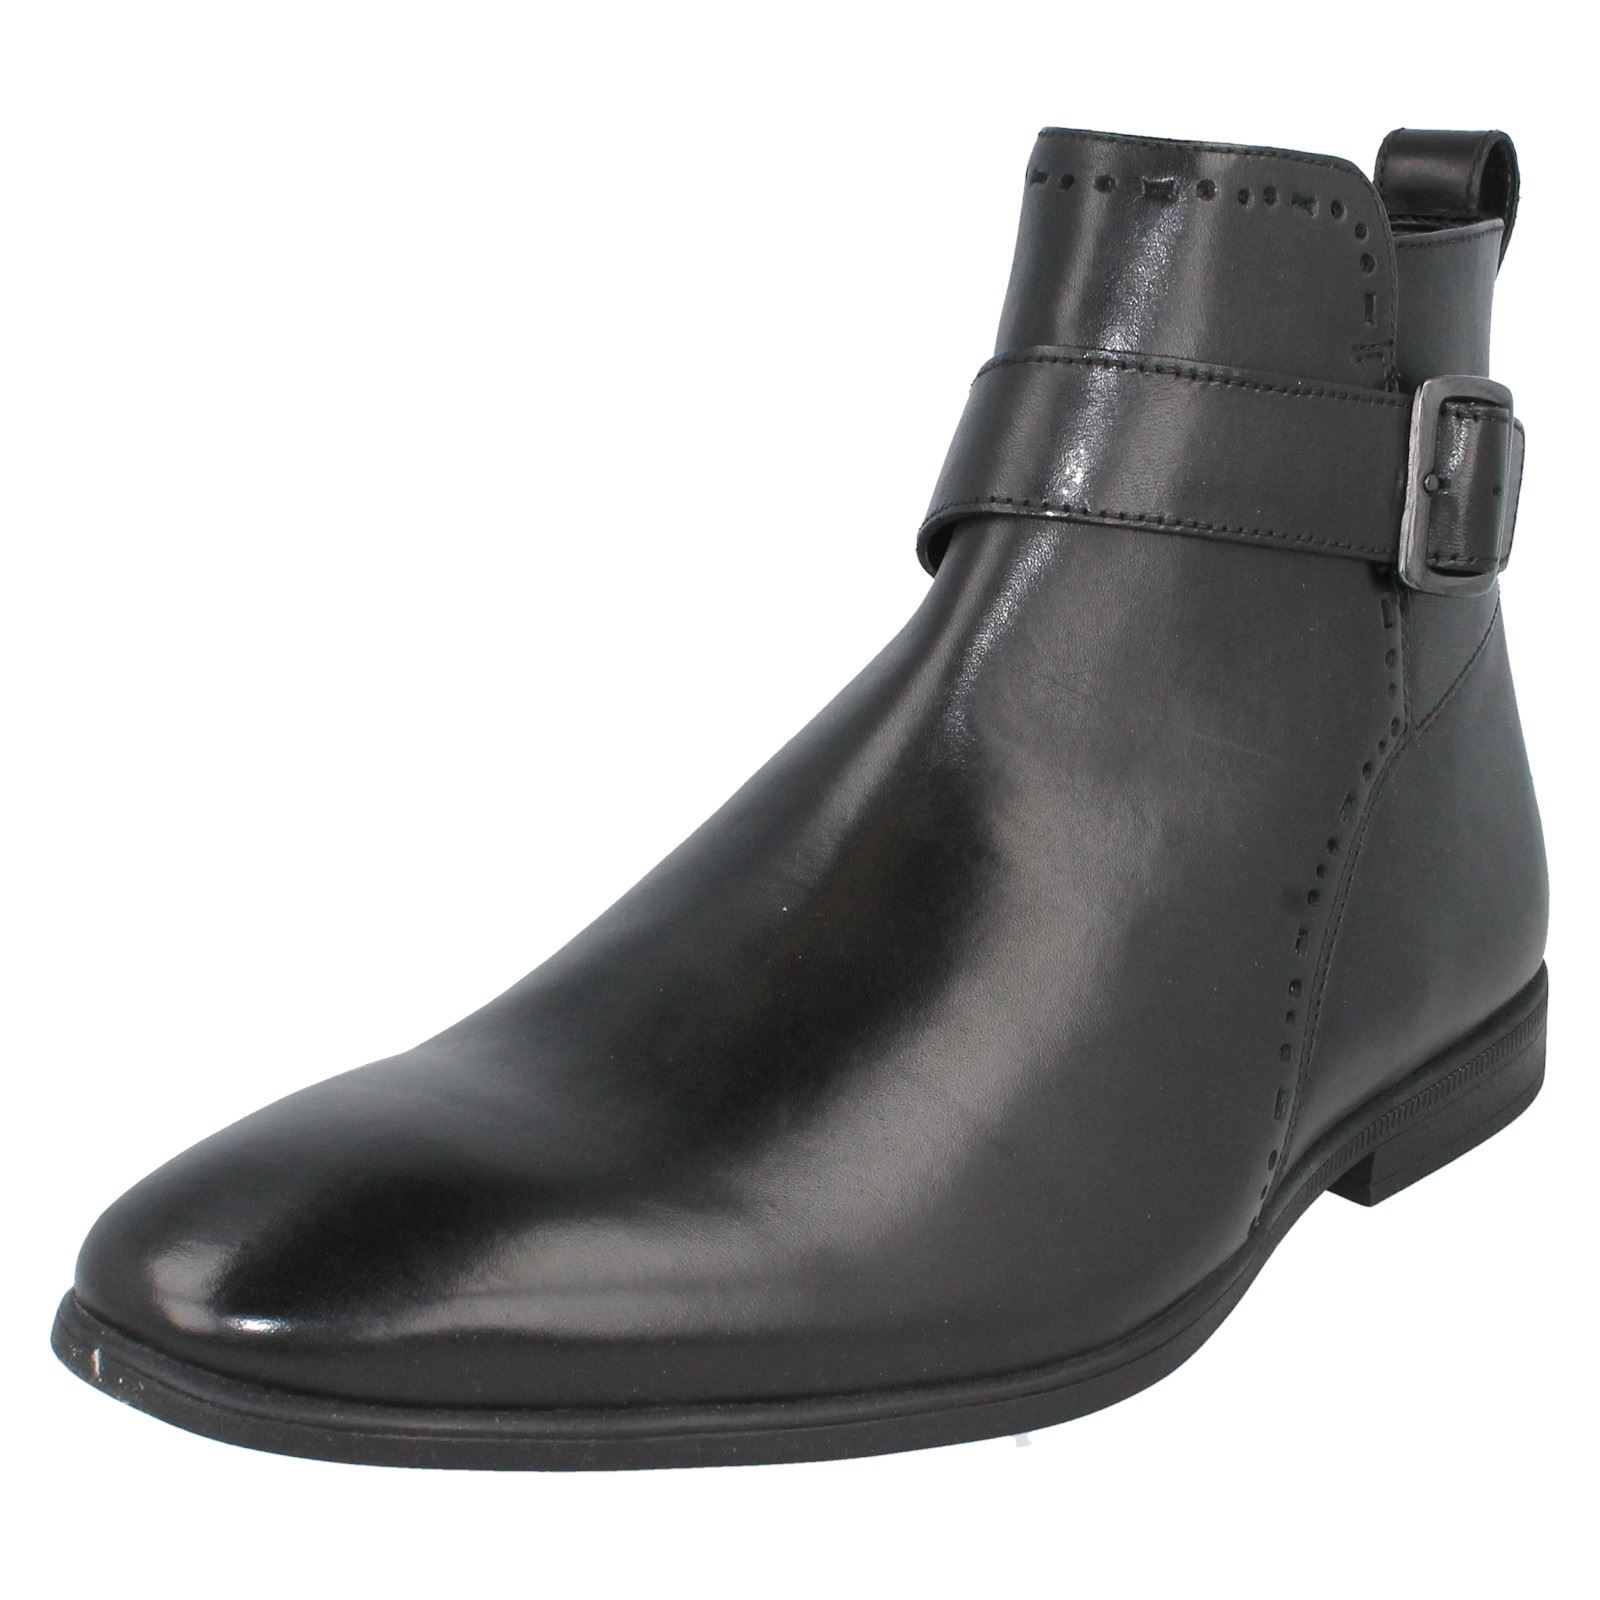 fbdf964f87d Men's Clarks Bampton Mid Zip-up Ankle BOOTS in Black UK 11 / EU 46